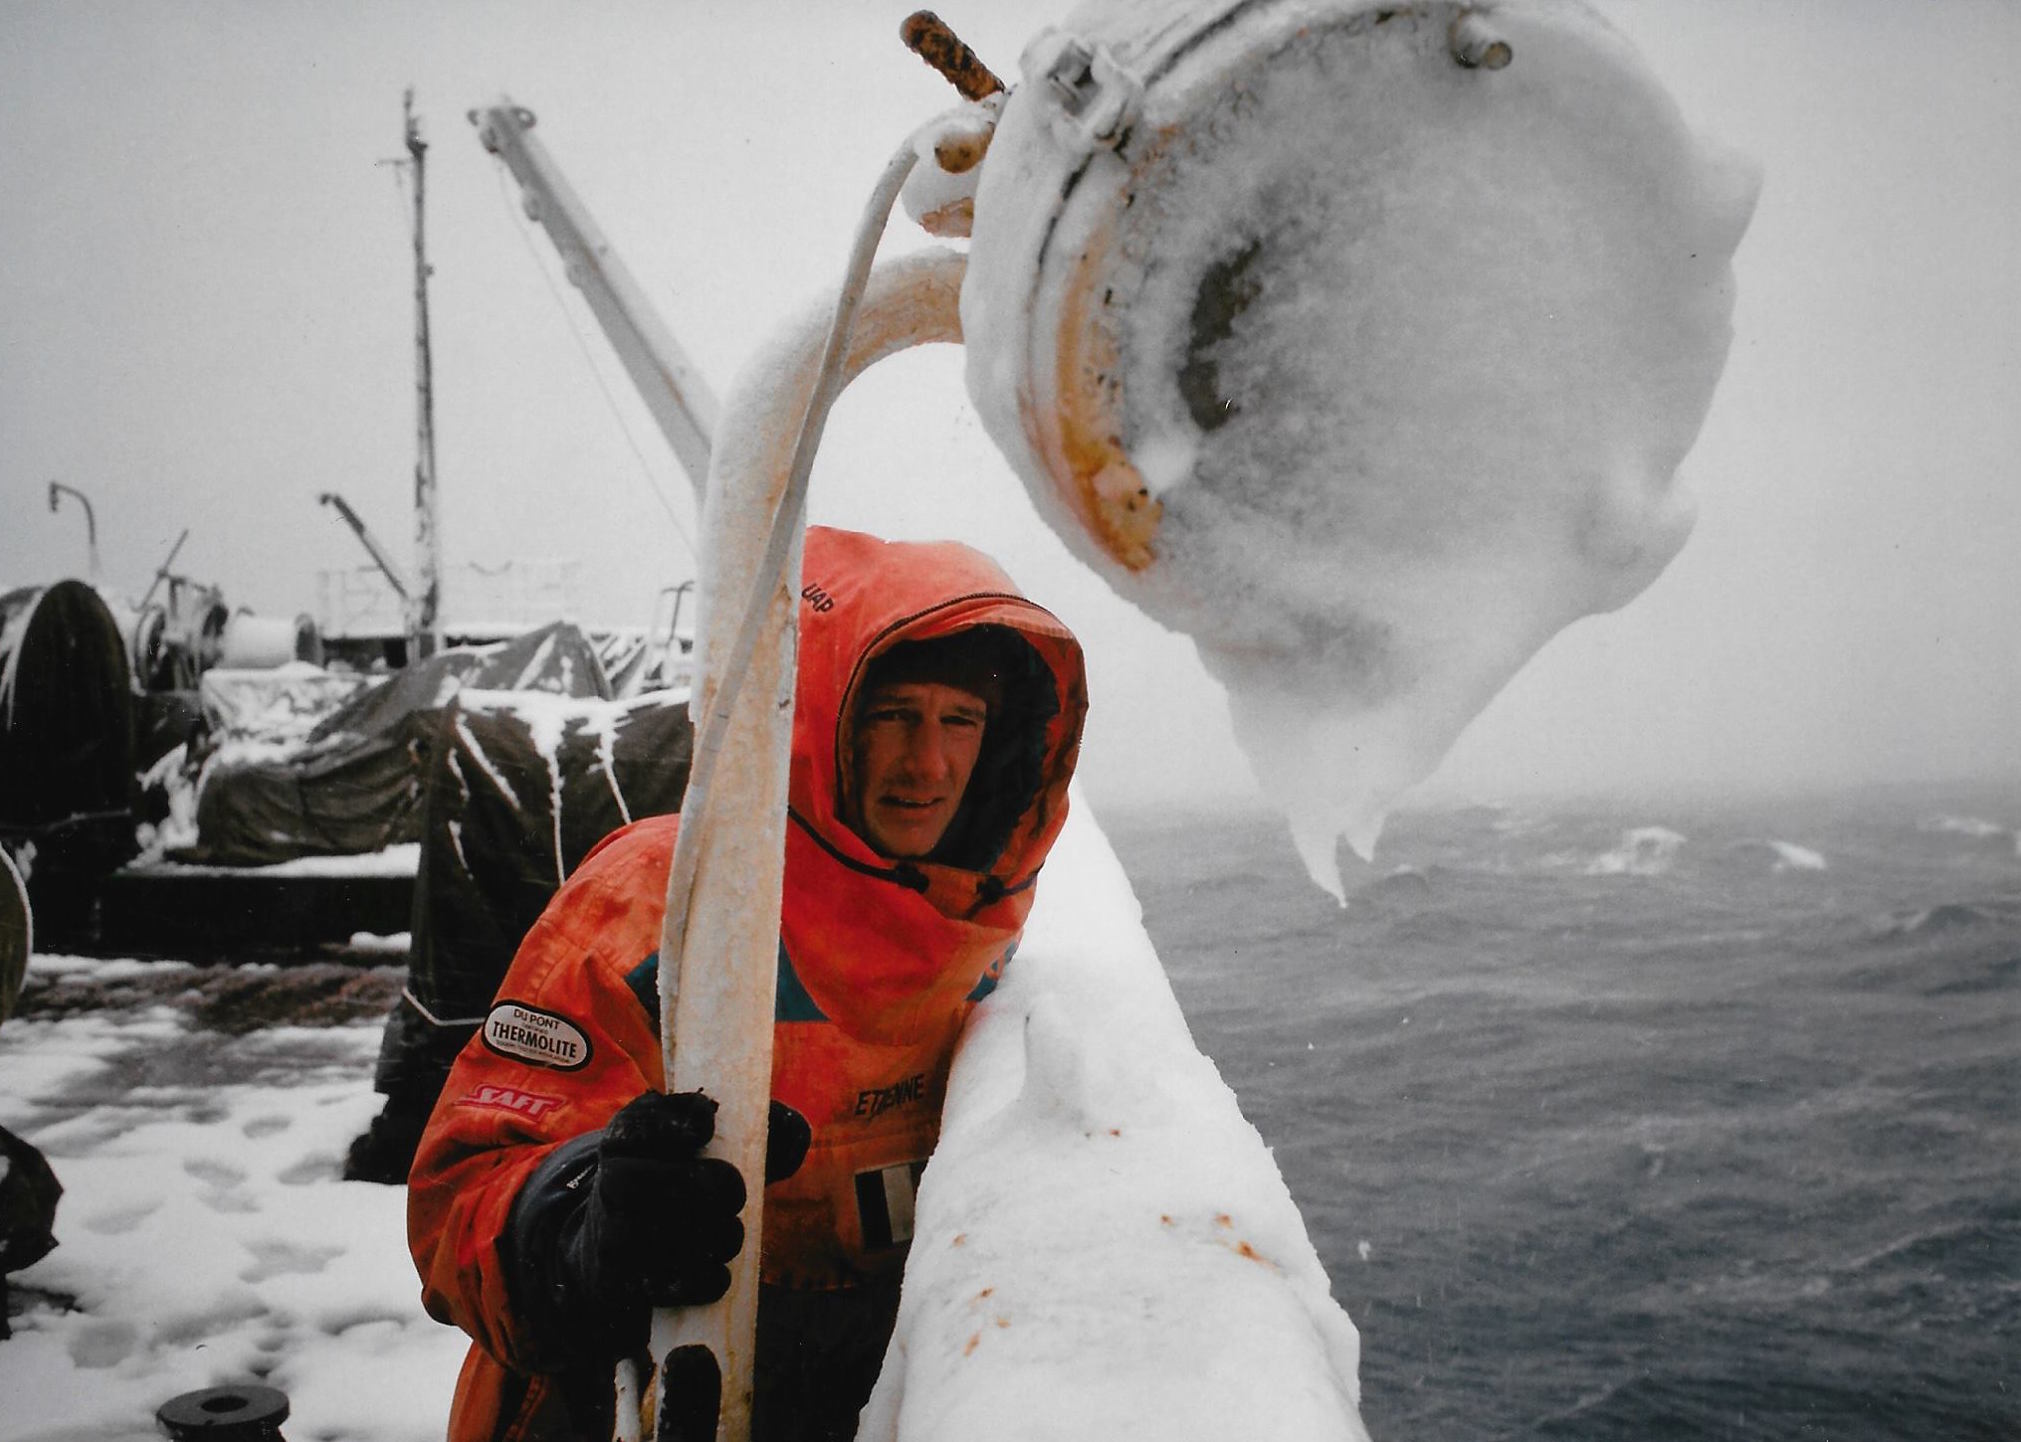 Jean-Louis Etienne watches Antarctica recede from view onboard the  Professor Zubov  at expedition's end. March 1990. Photo: Laurent Chevalier